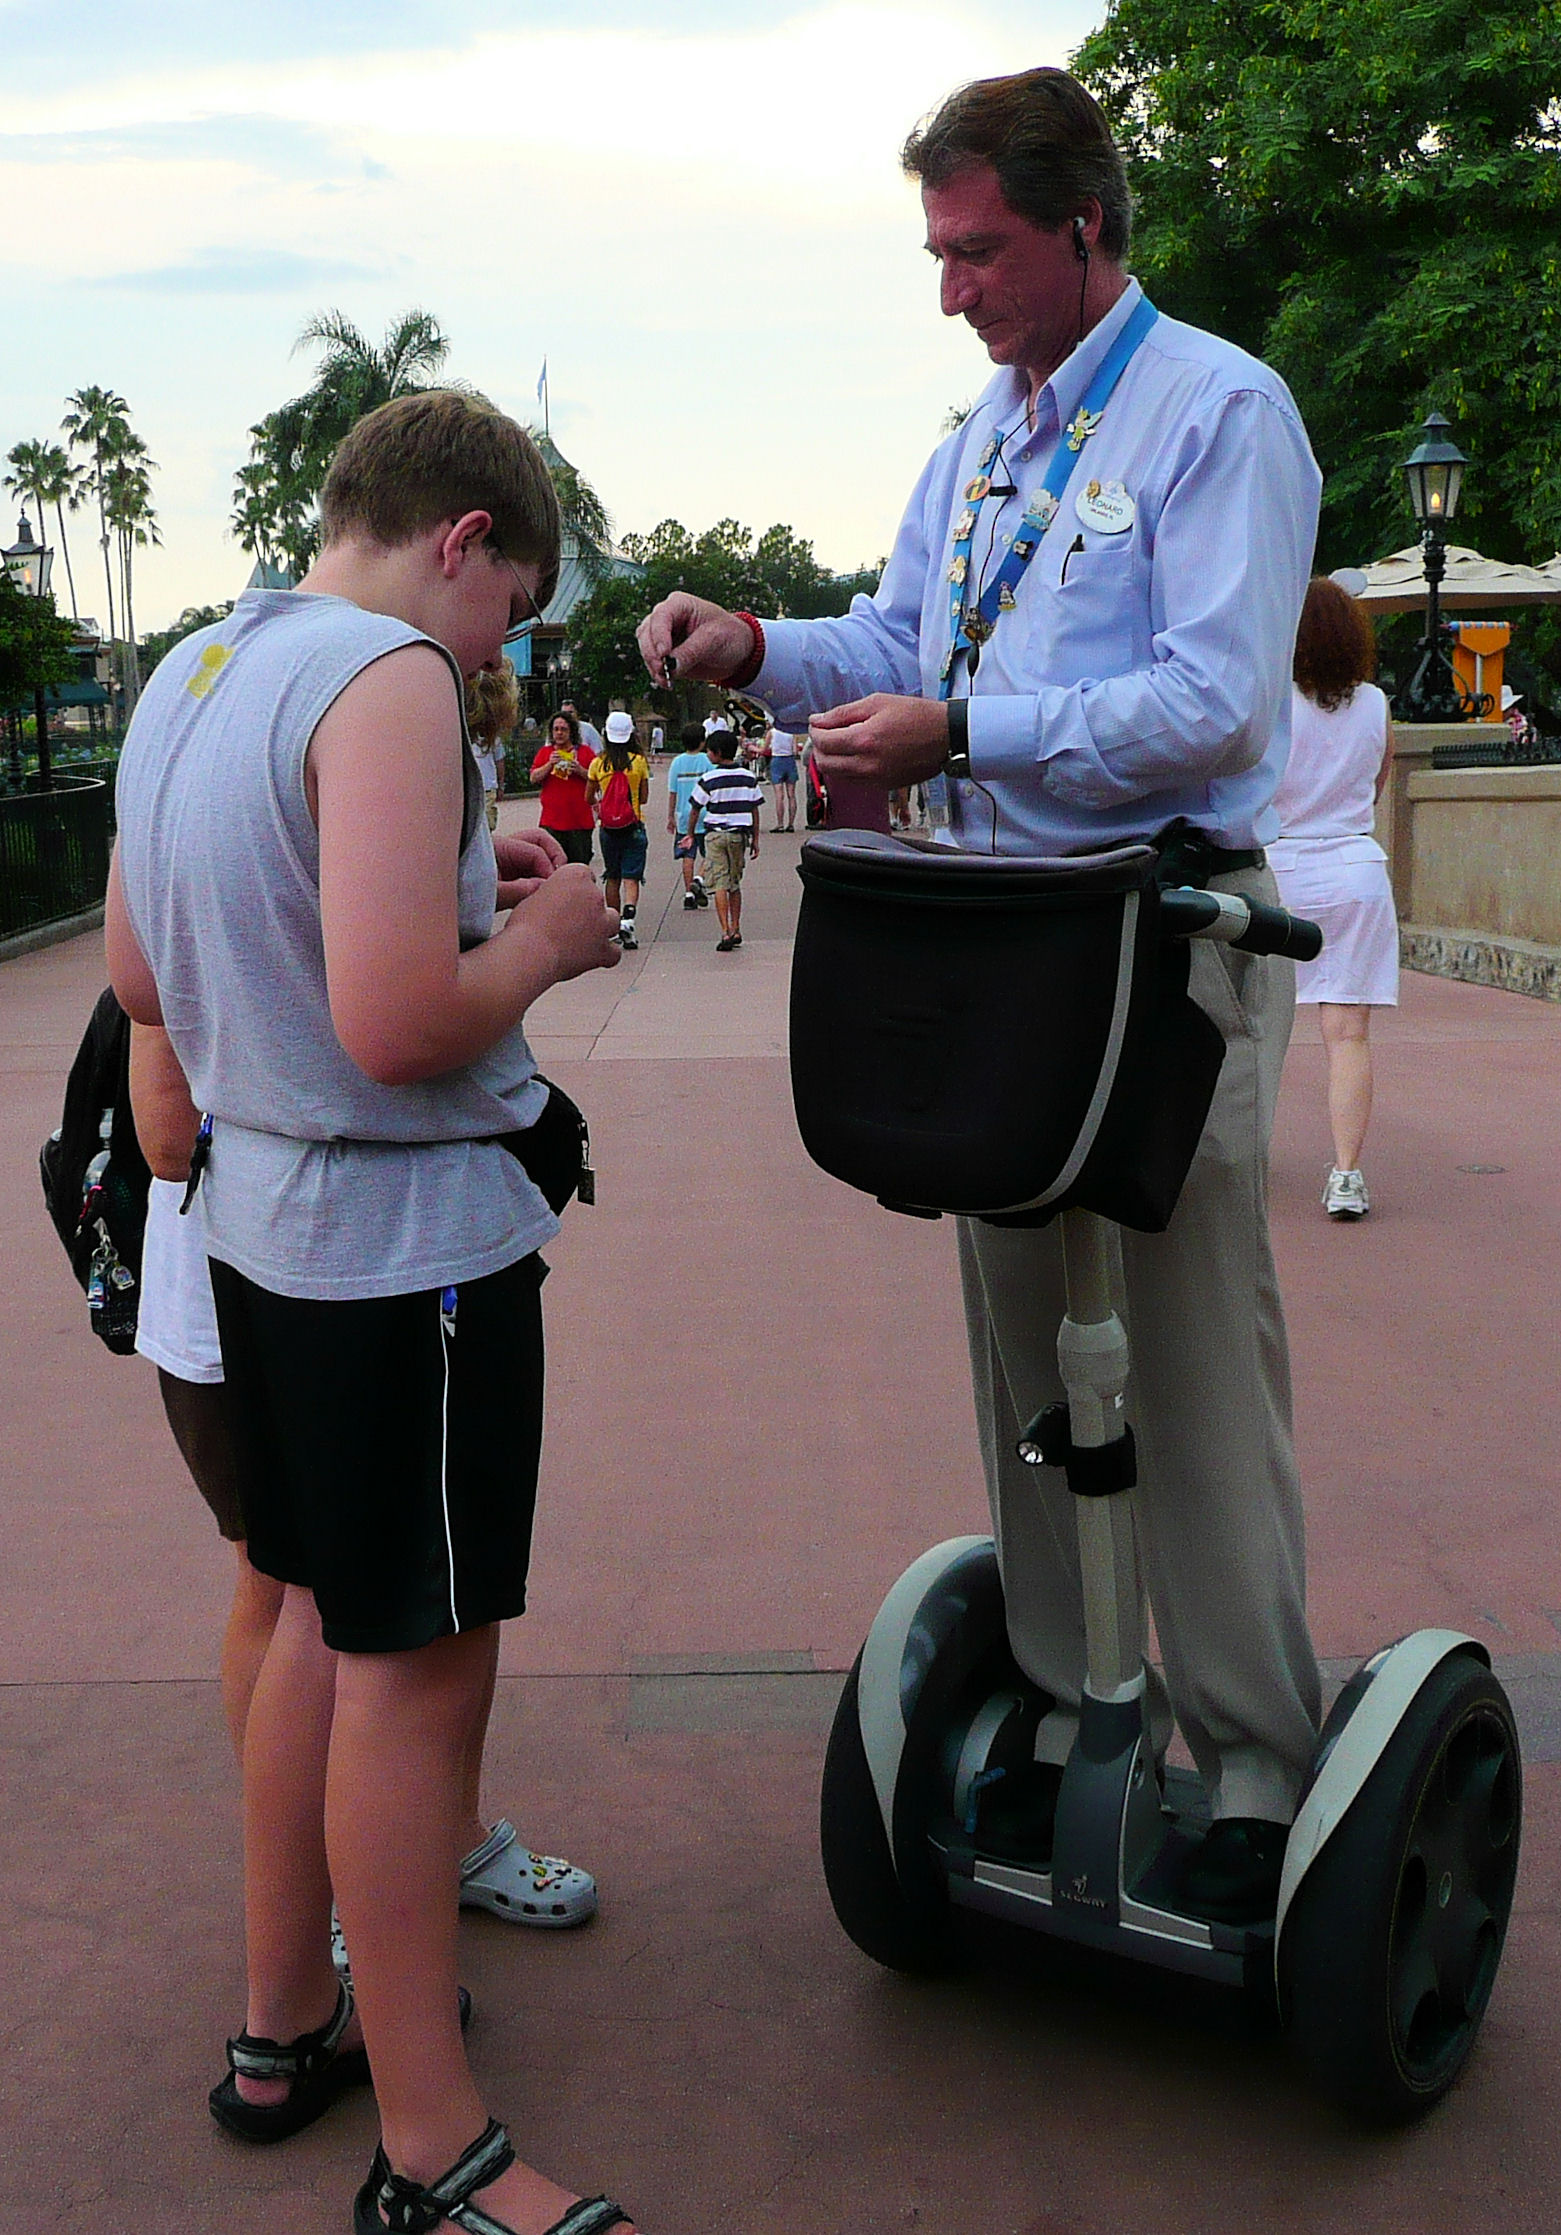 Pin trading with a cast member on a Segway.